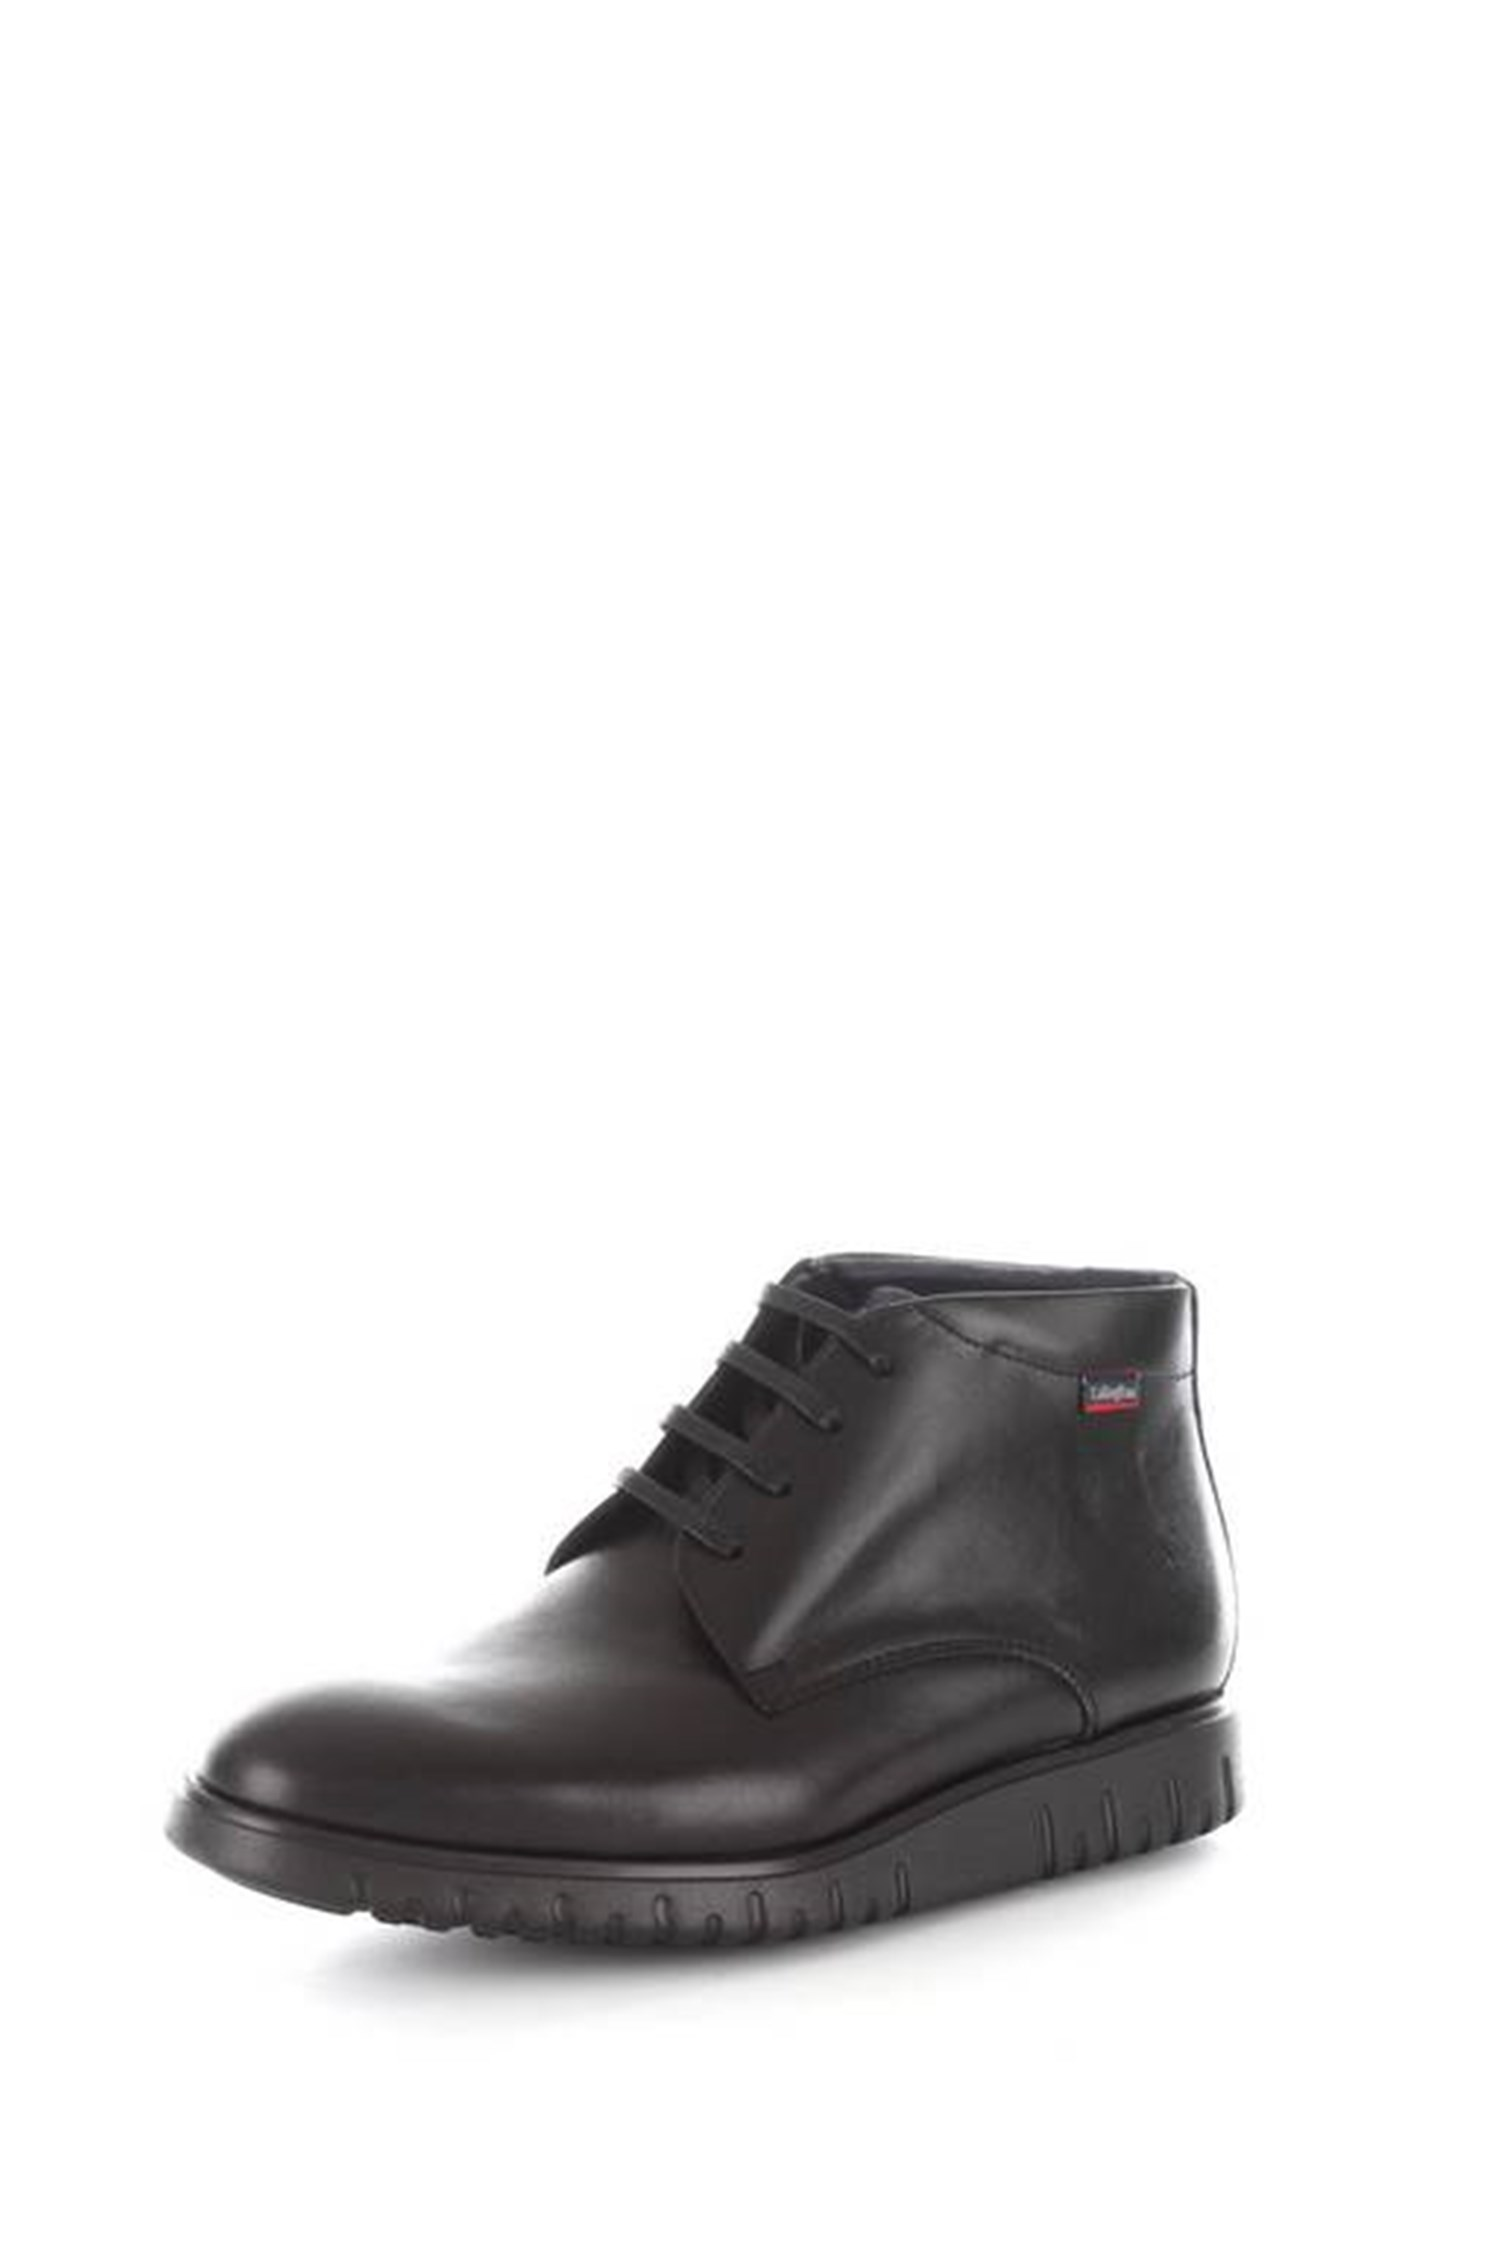 Callaghan Shoes Man low BLACK 10503